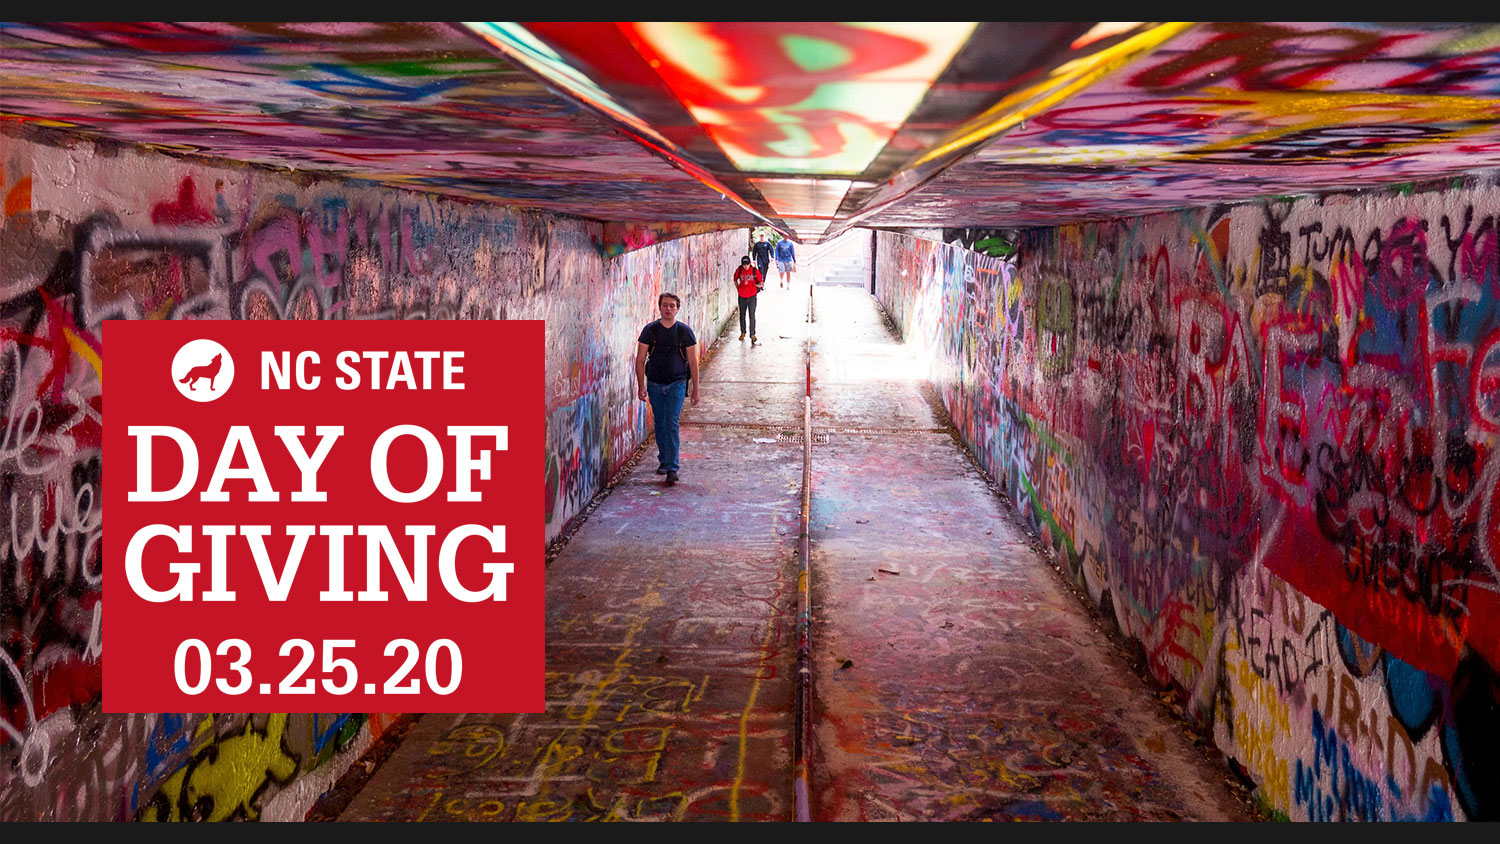 Day of Giving promo with Tunnel of Free Expression